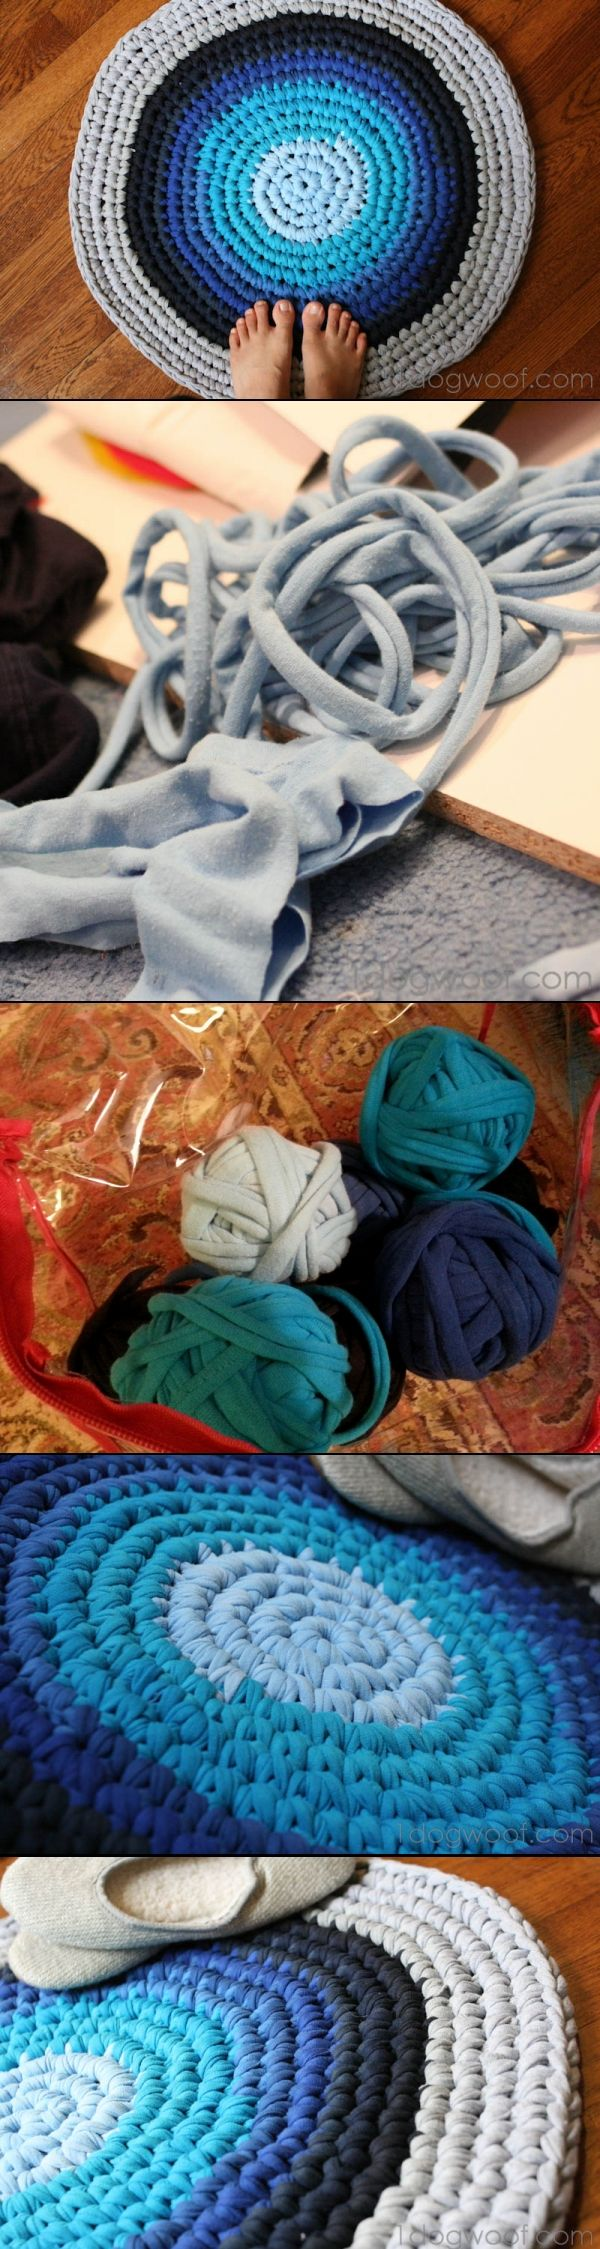 MAKE THIS Really NICE t-shirt rug. Like the TUTORIA: on adding stitches after every pass. Beautiful!